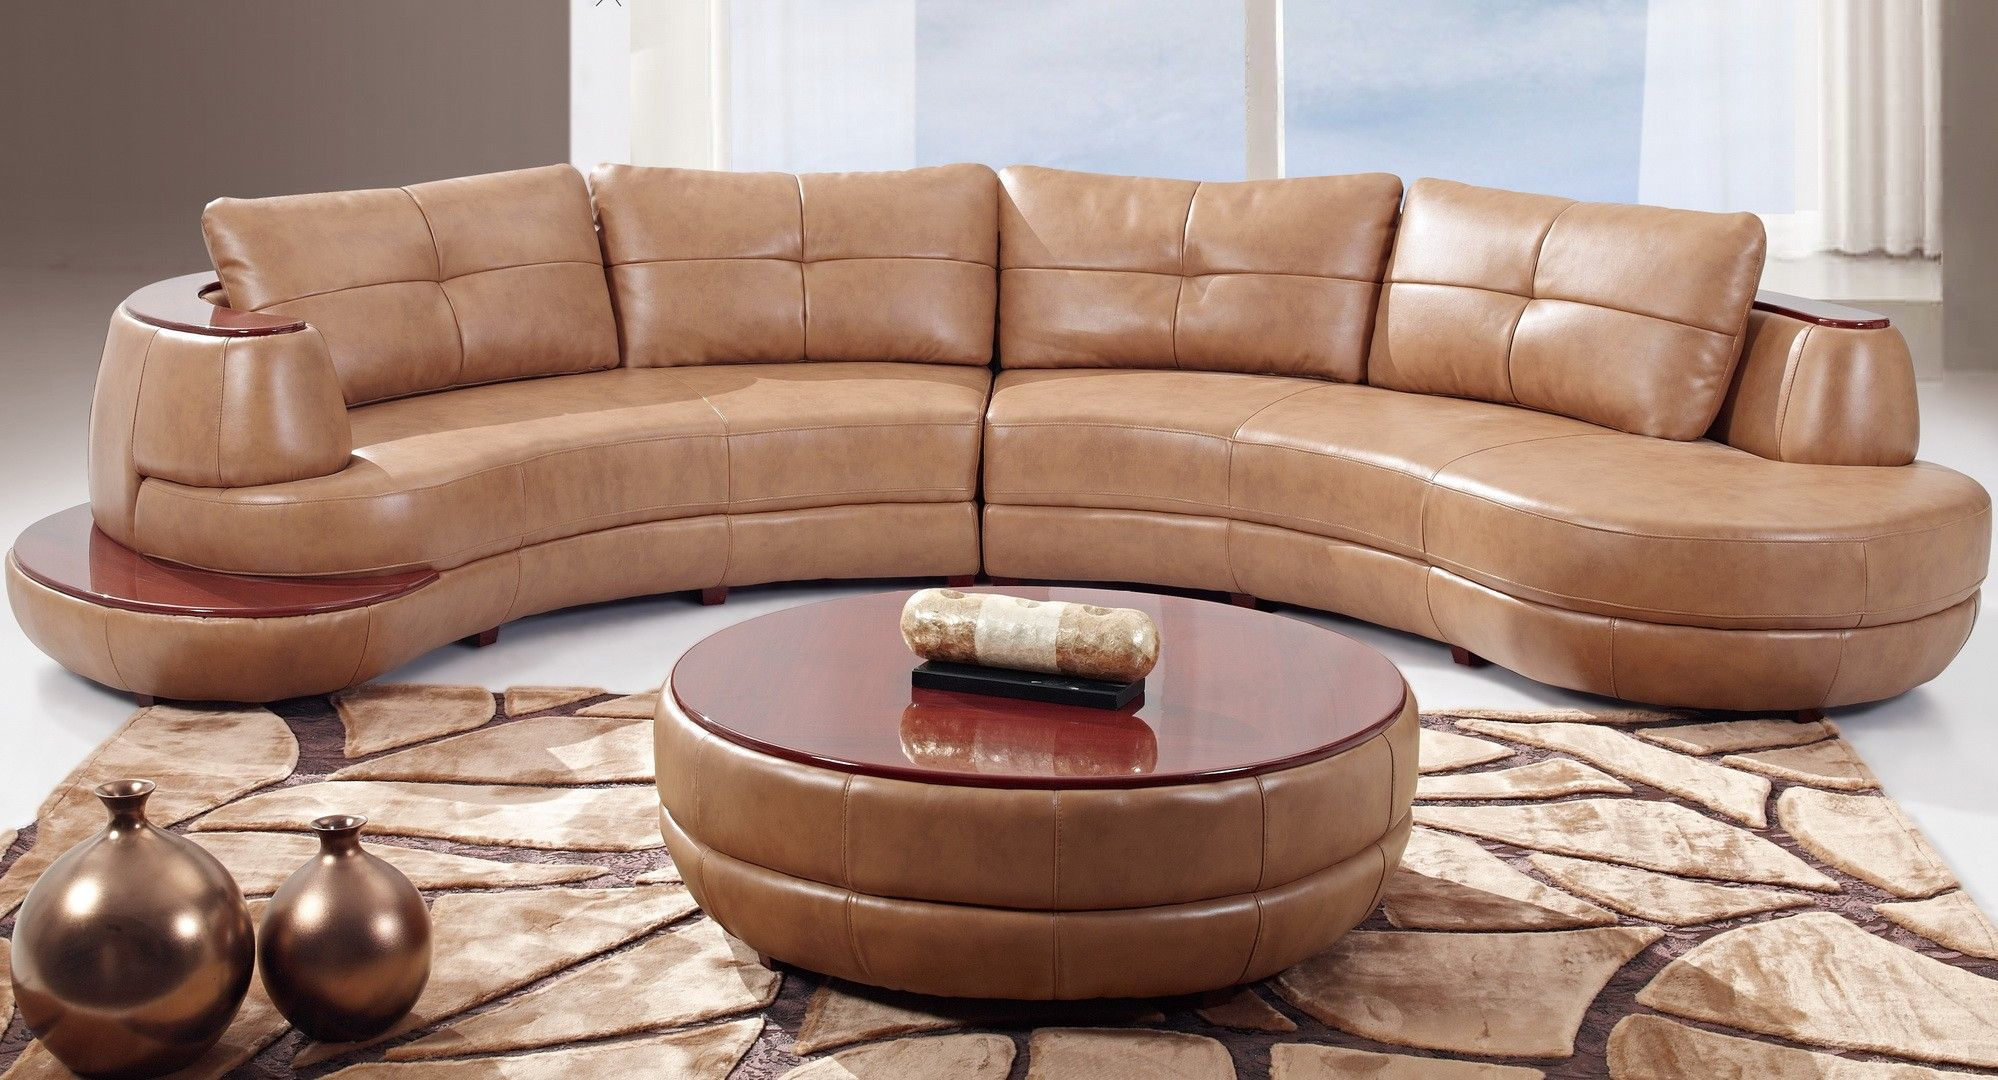 """Global U918-HONEY Sectional - Modern beige sectional. Made of leather. Dimensions: L150"""" x D75"""" x H33""""."""